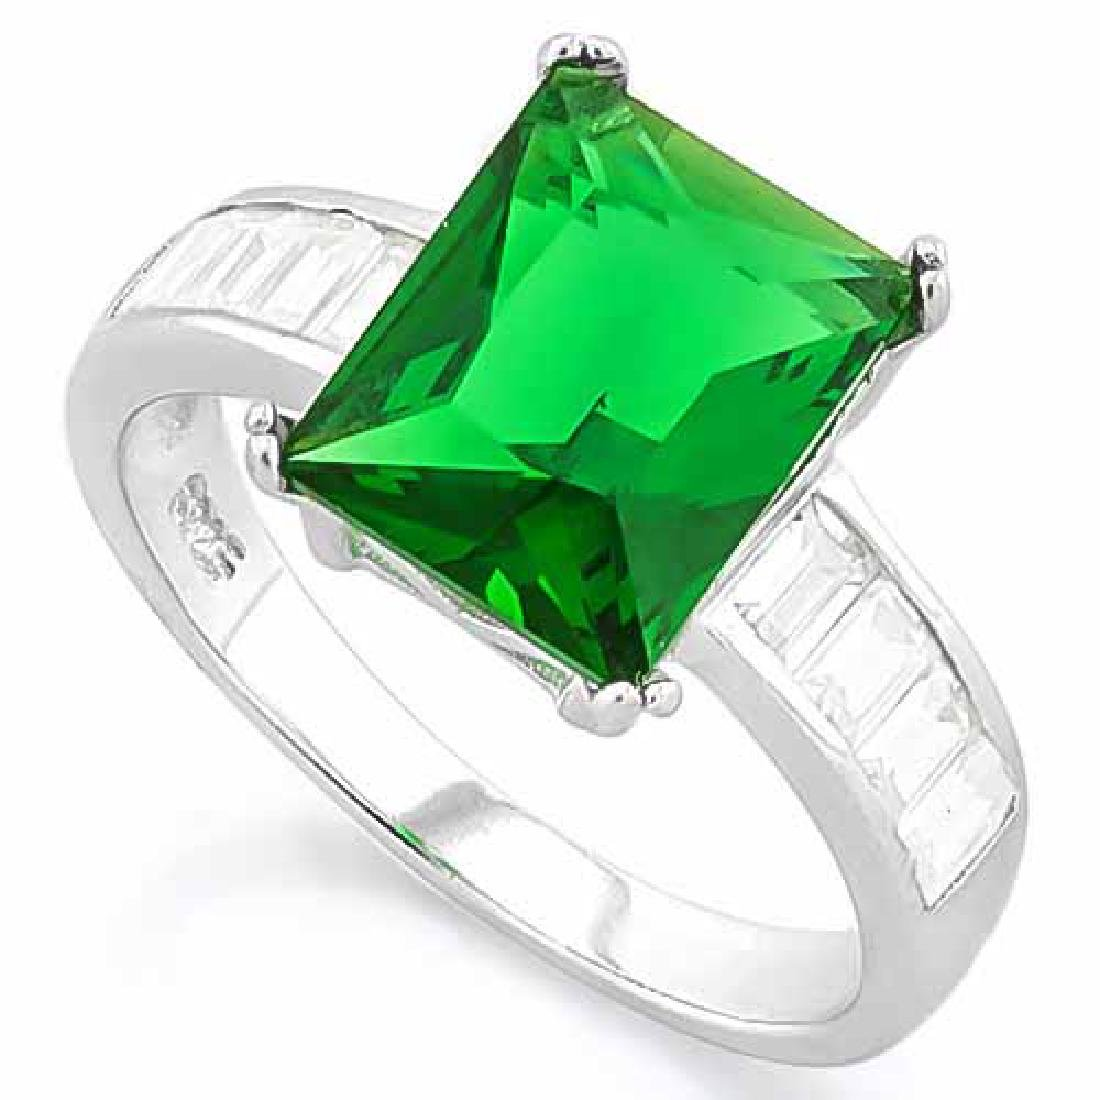 4 2/5 CARAT (13 PCS) CREATED EMERALD 925 STERLING SILVE